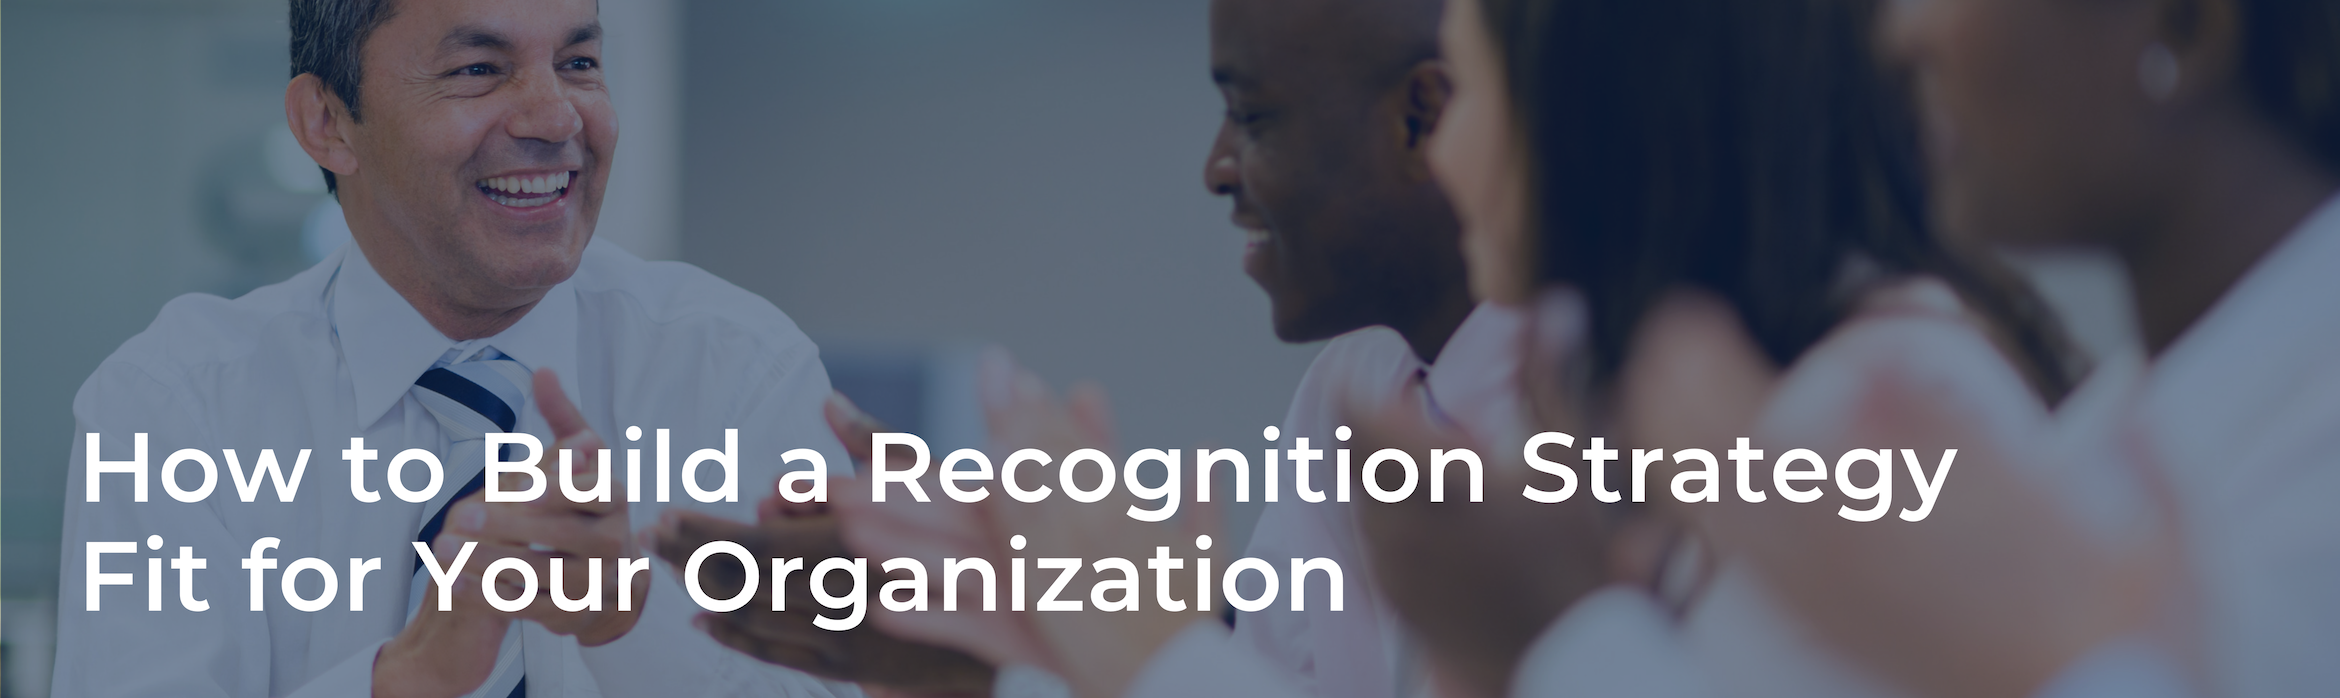 How to Build a Recognition Strategy Fit for Your Organization